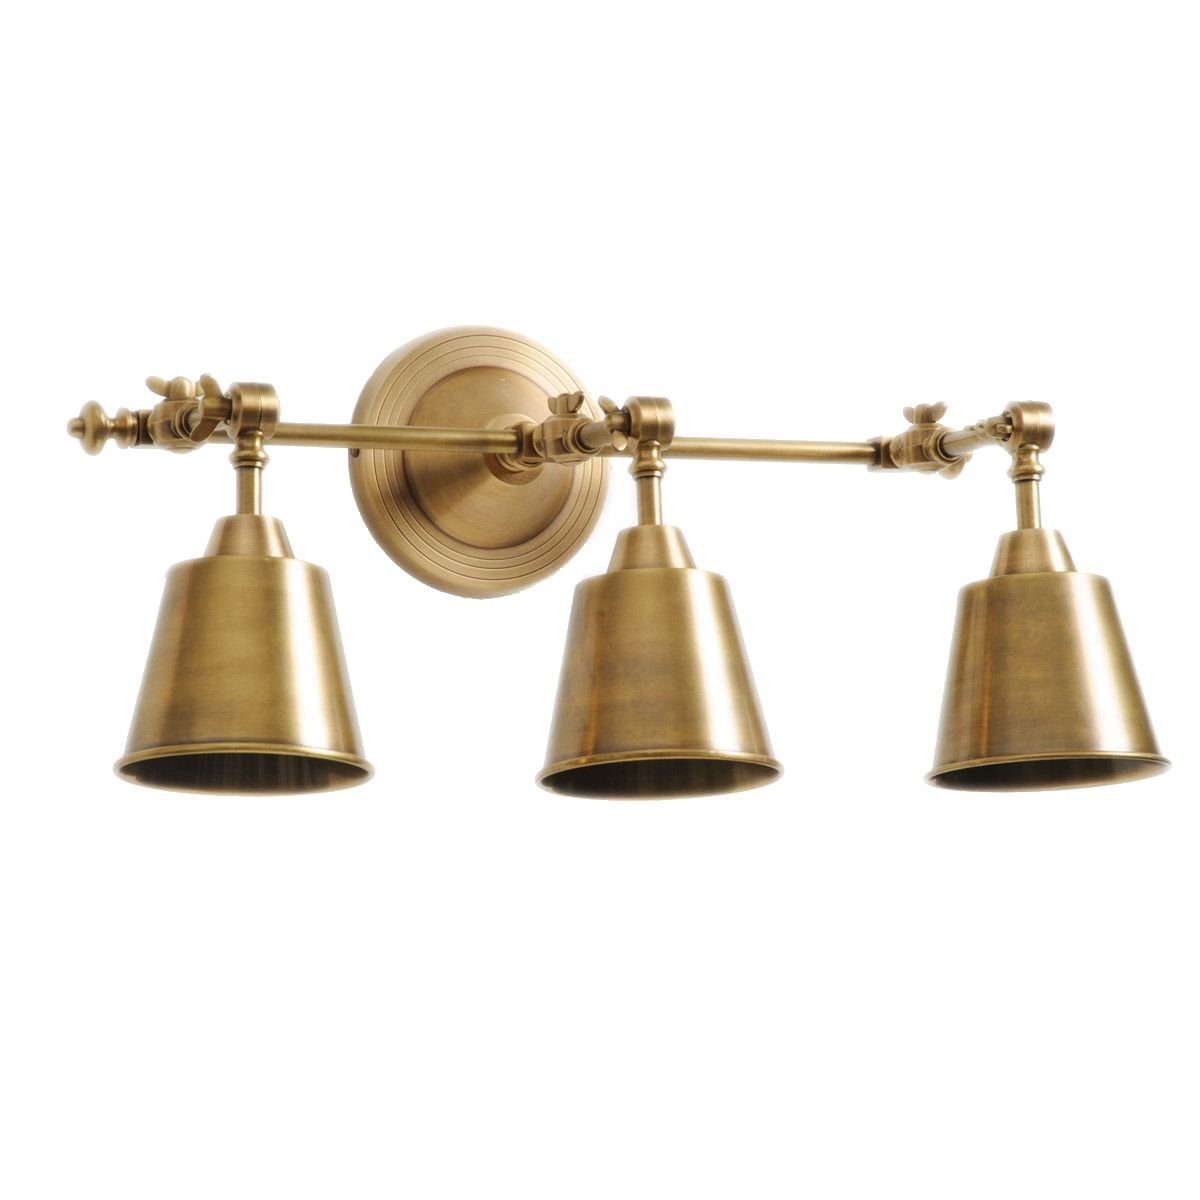 Barbara Cosgrove Library Three Light Antiqued Brass Wall Sconce @LaylaGrayce